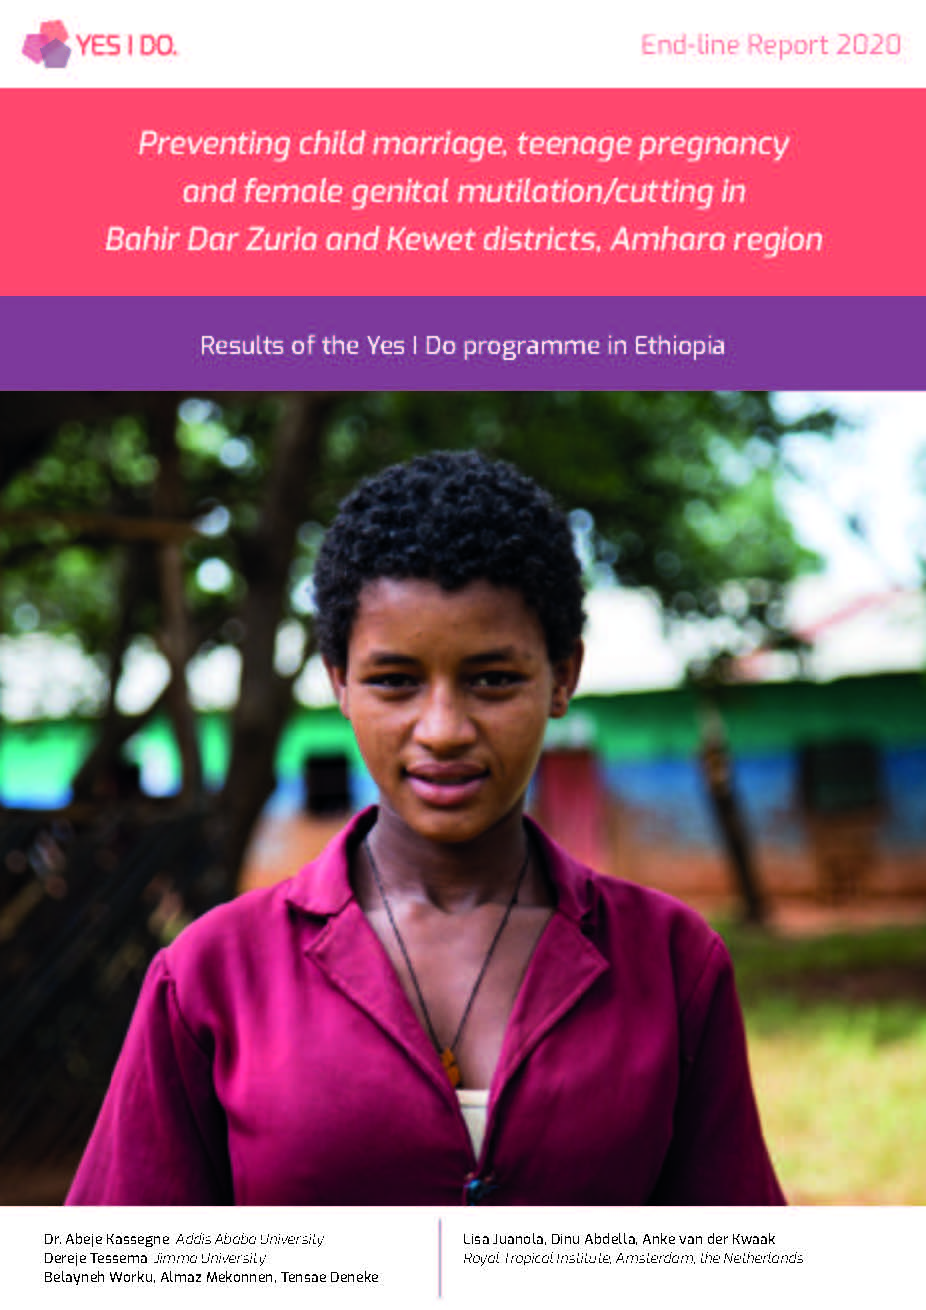 Preventing child marriage, teenage pregnancy and female genital mutilation/cutting in Bahir Dar Zuria and Kewet districts, Amhara region Publication